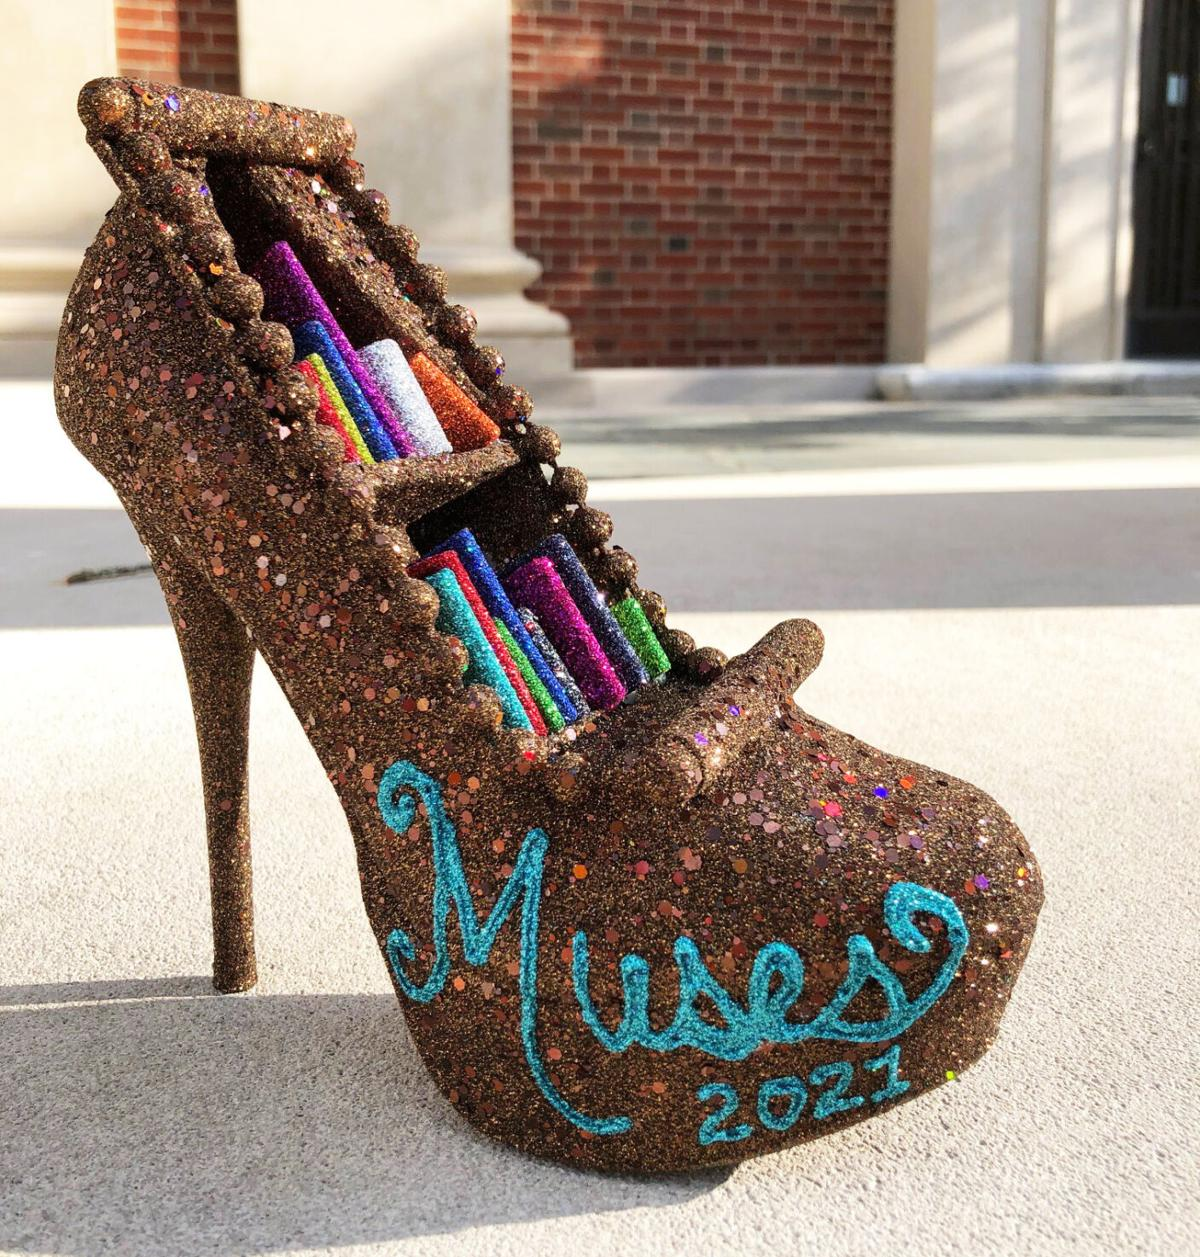 Muses shoe, 2021